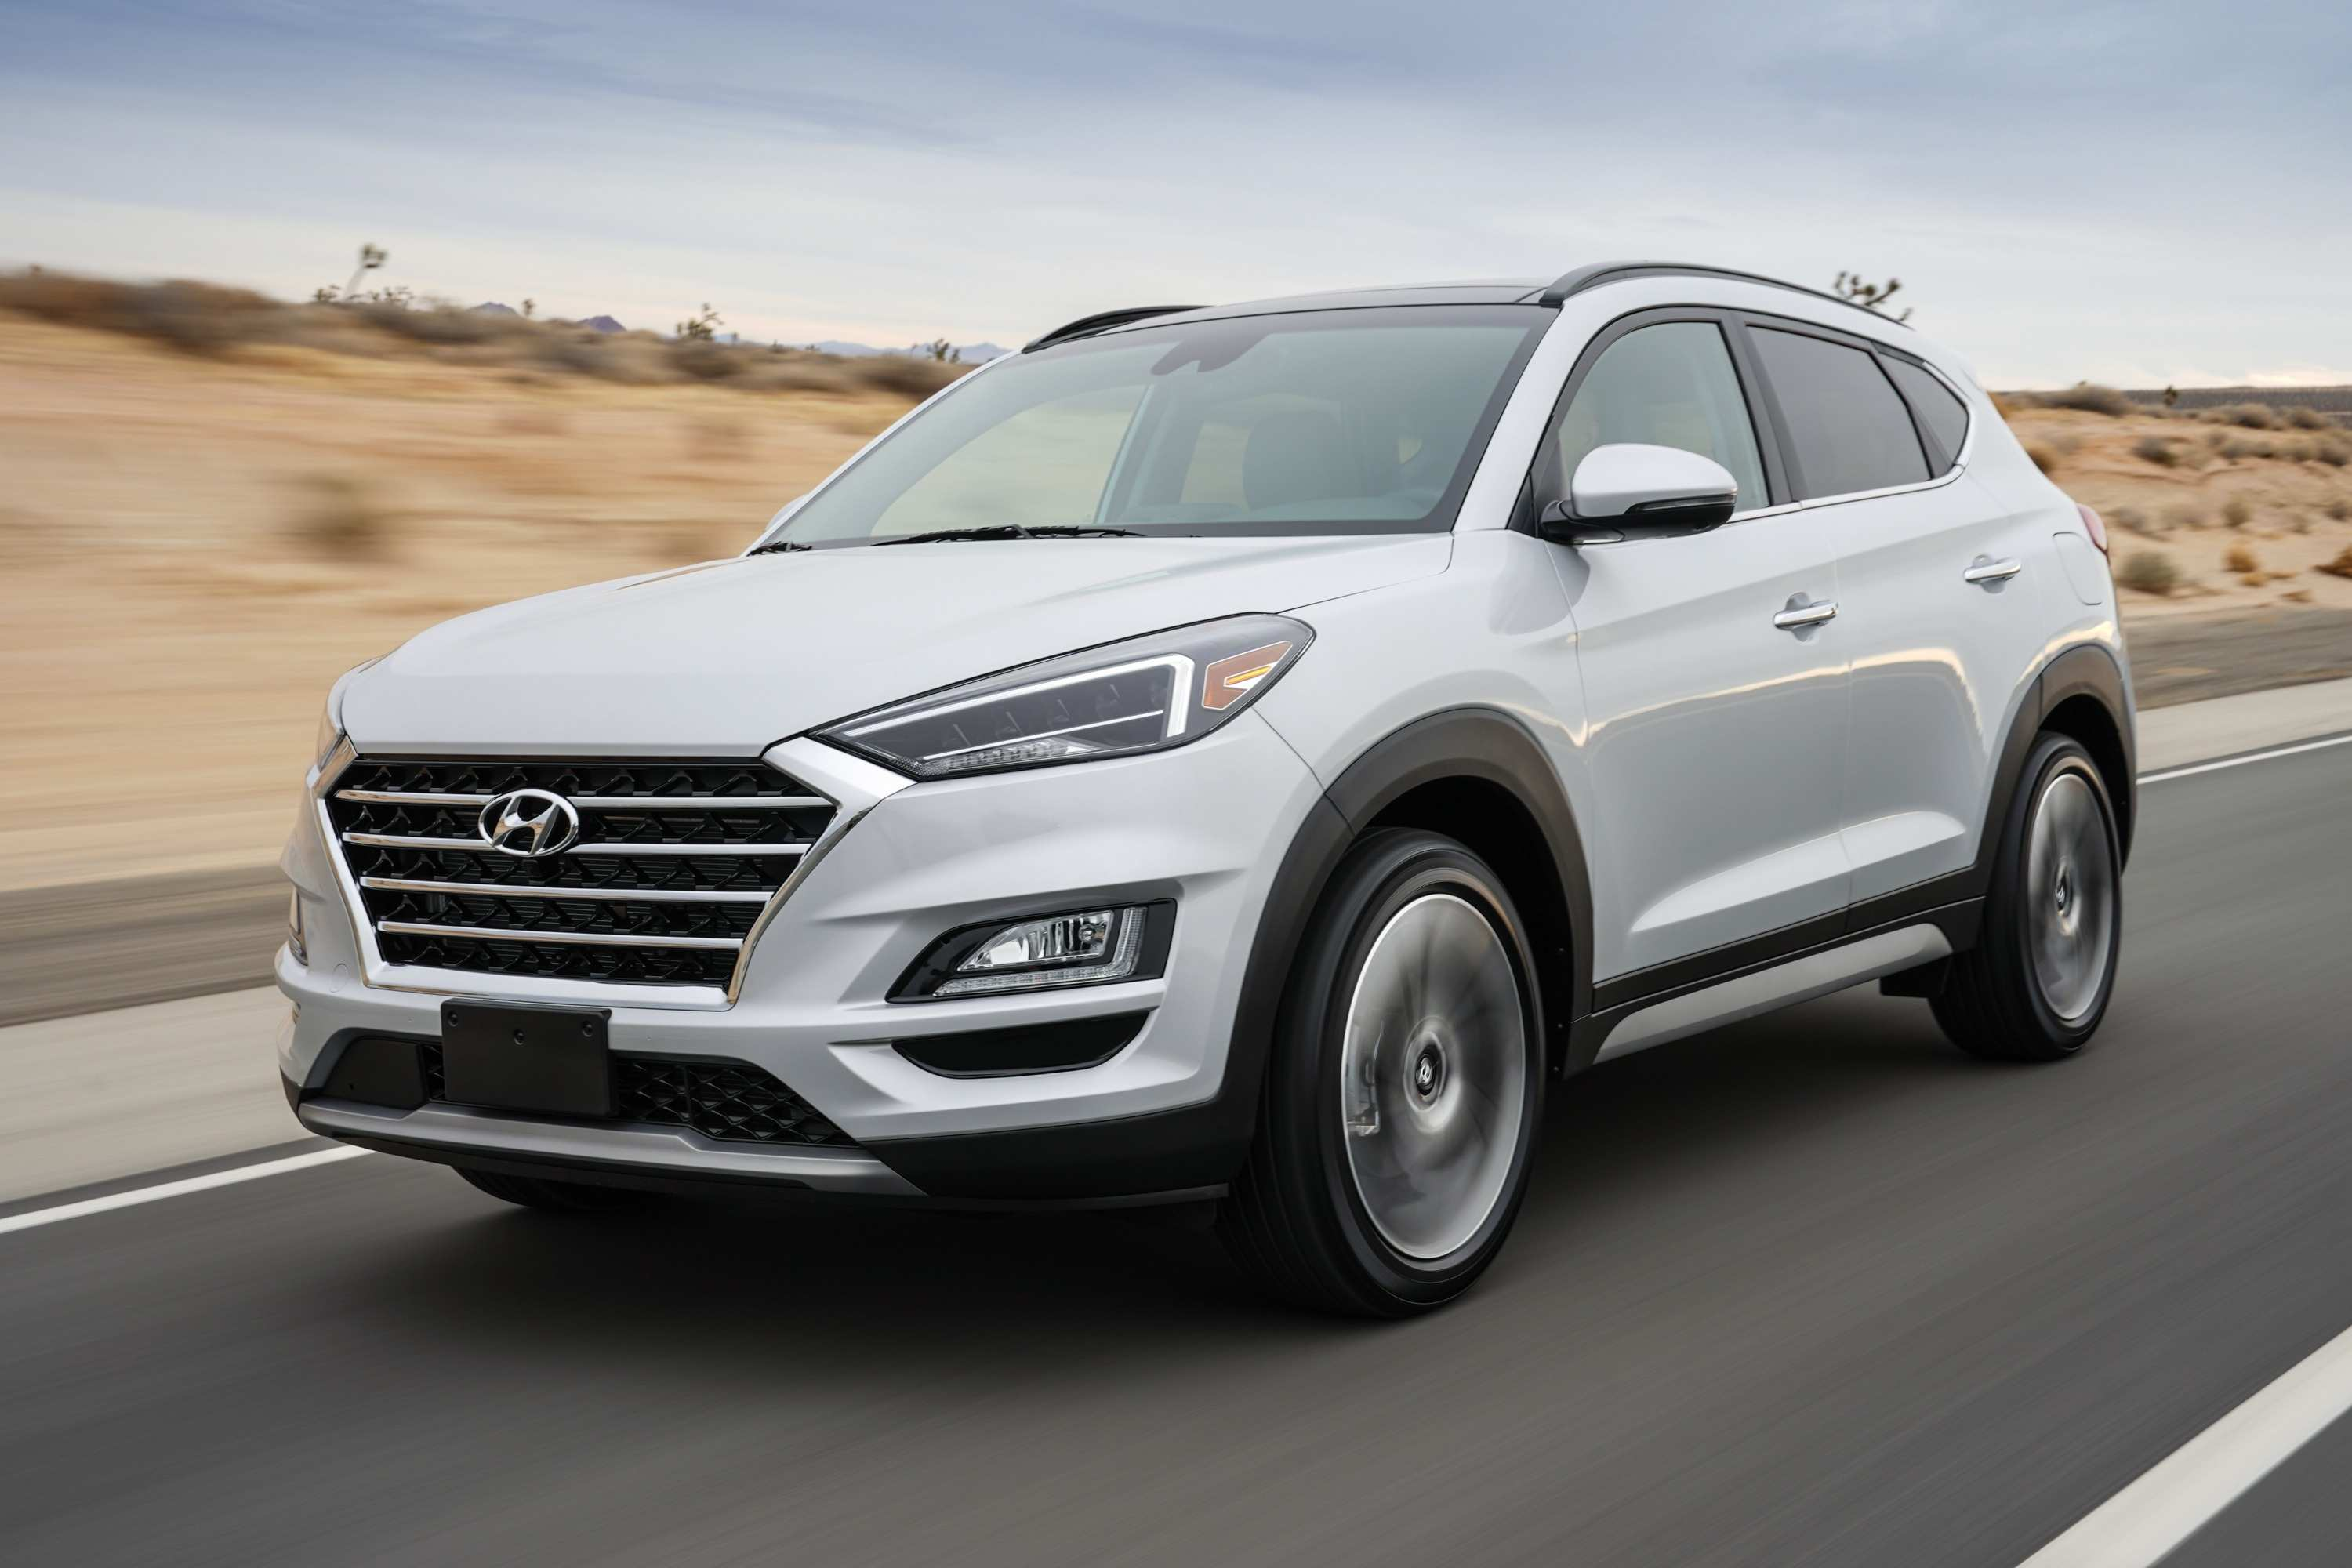 40 The 2019 Hyundai Tucson 0 60 History